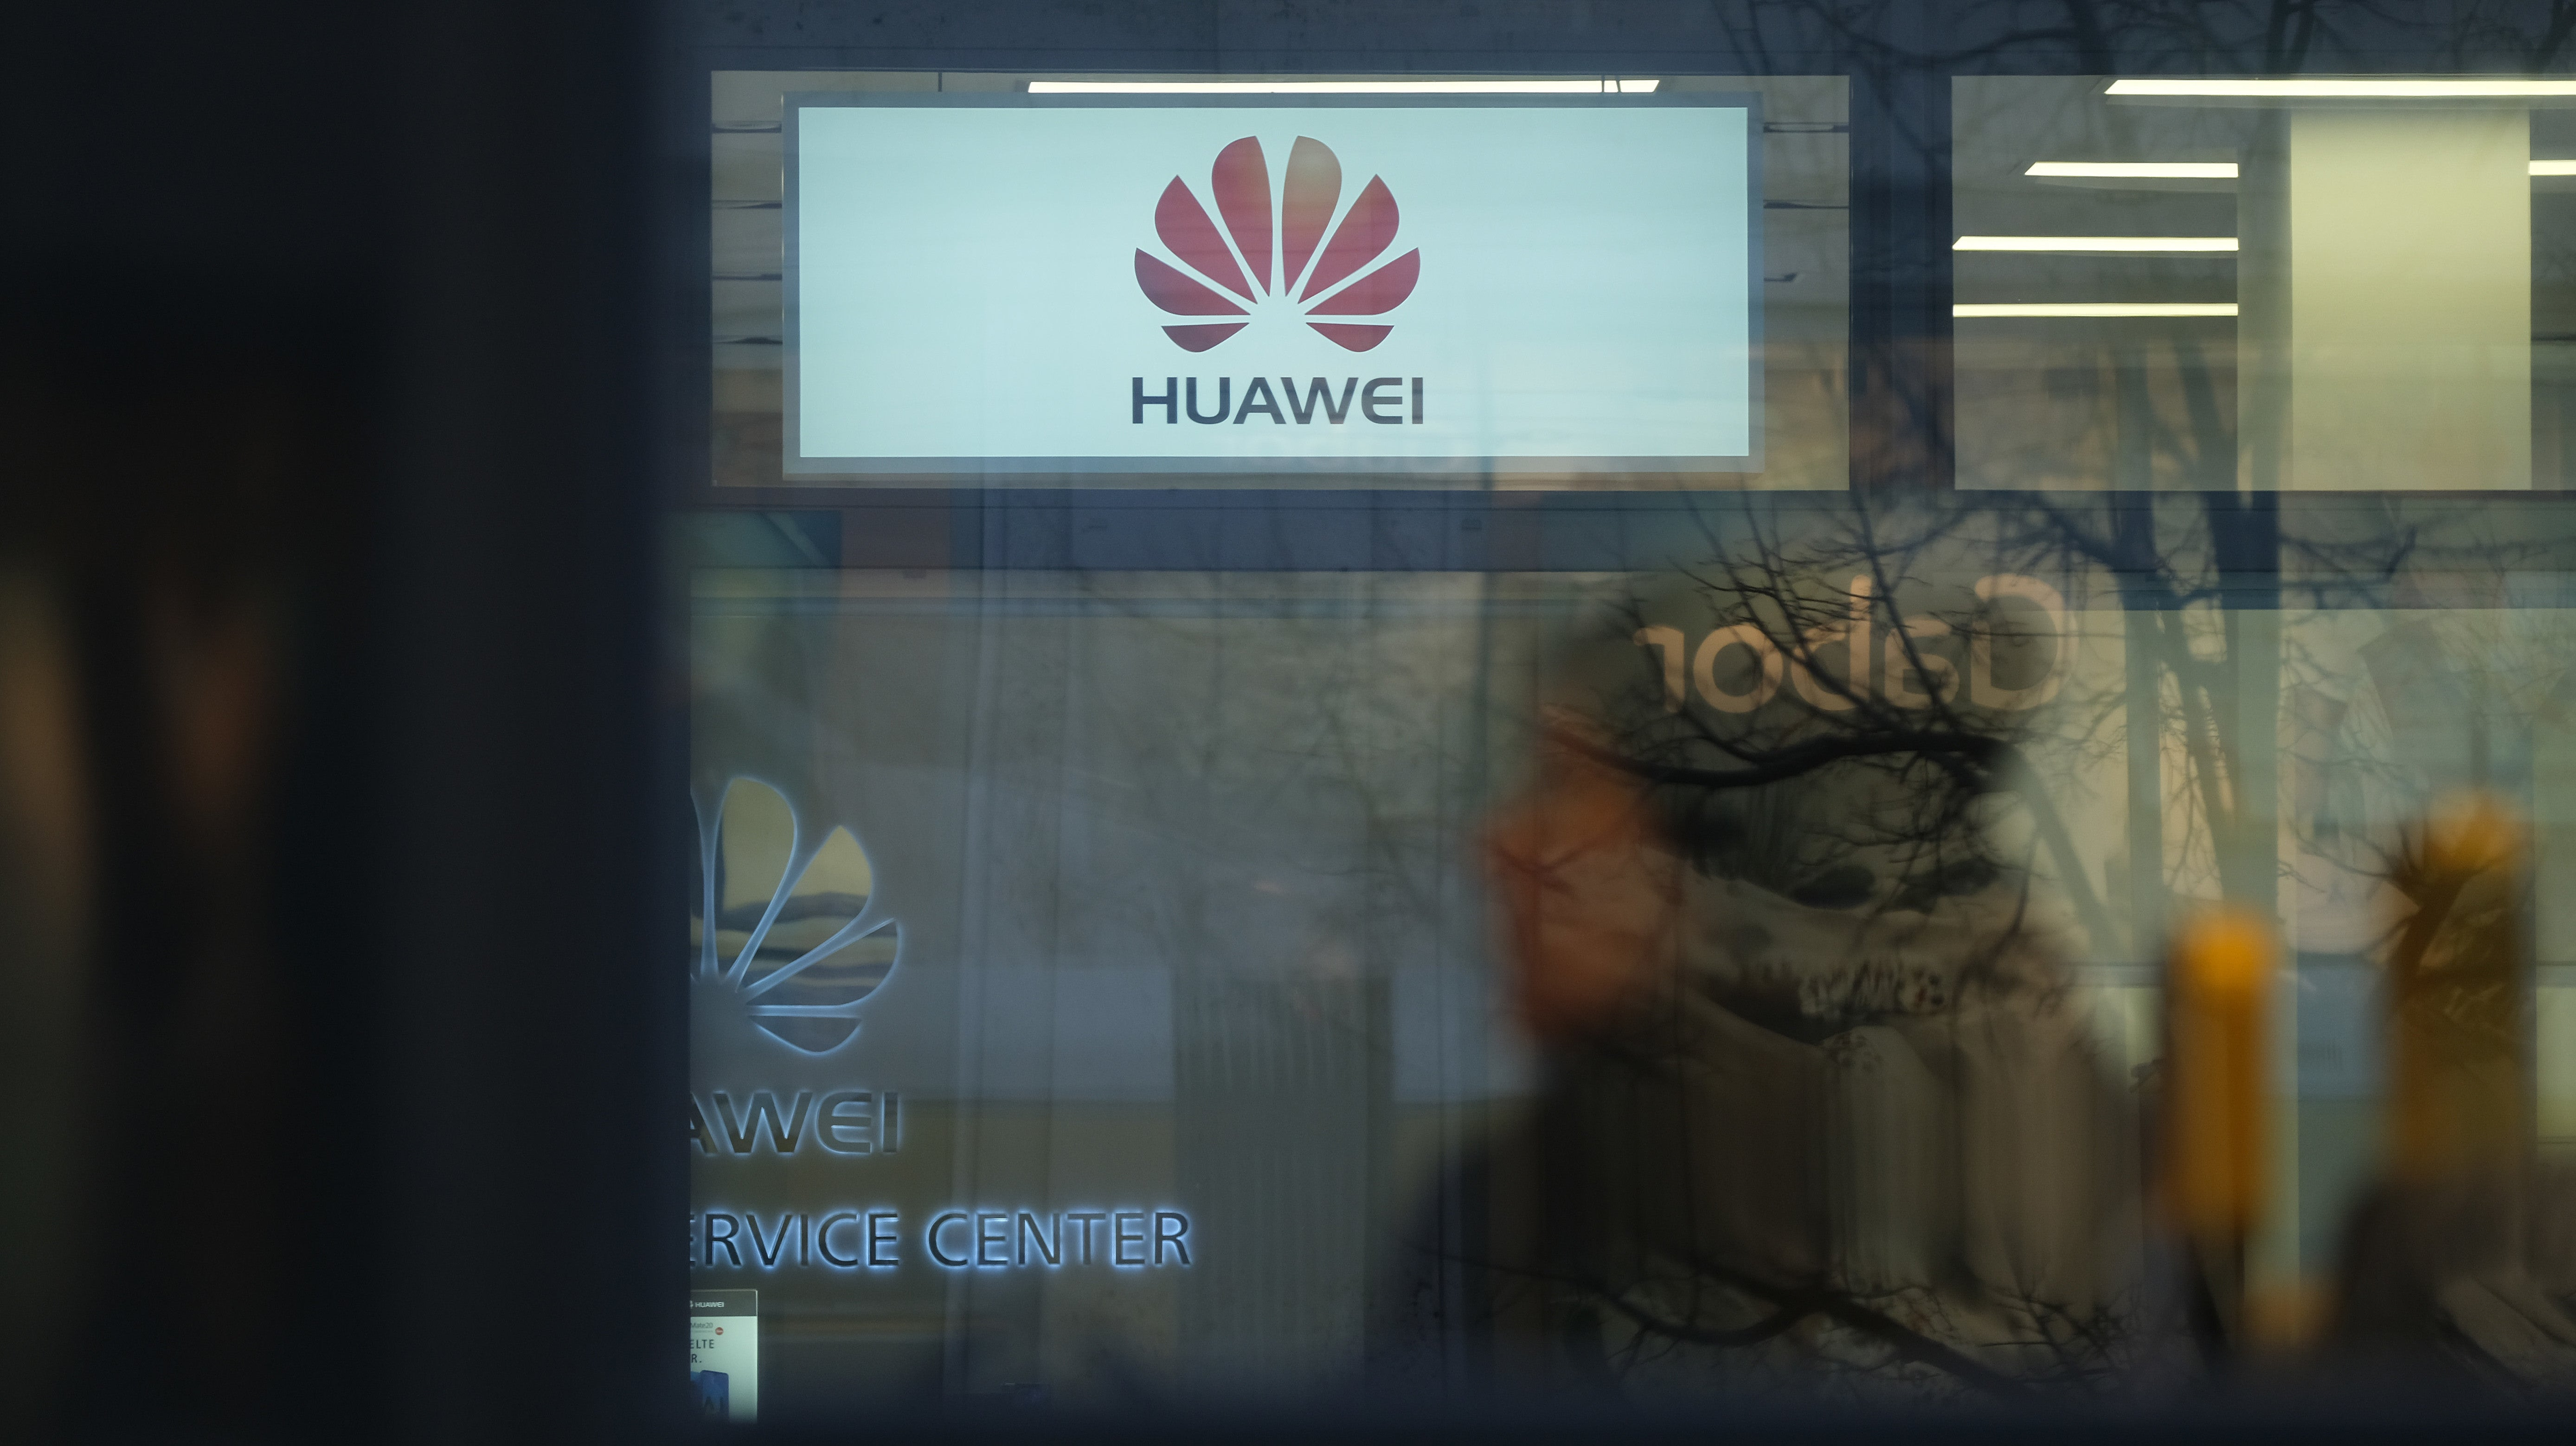 Now We Know What The Hell Is Going On With Huawei, Sort Of